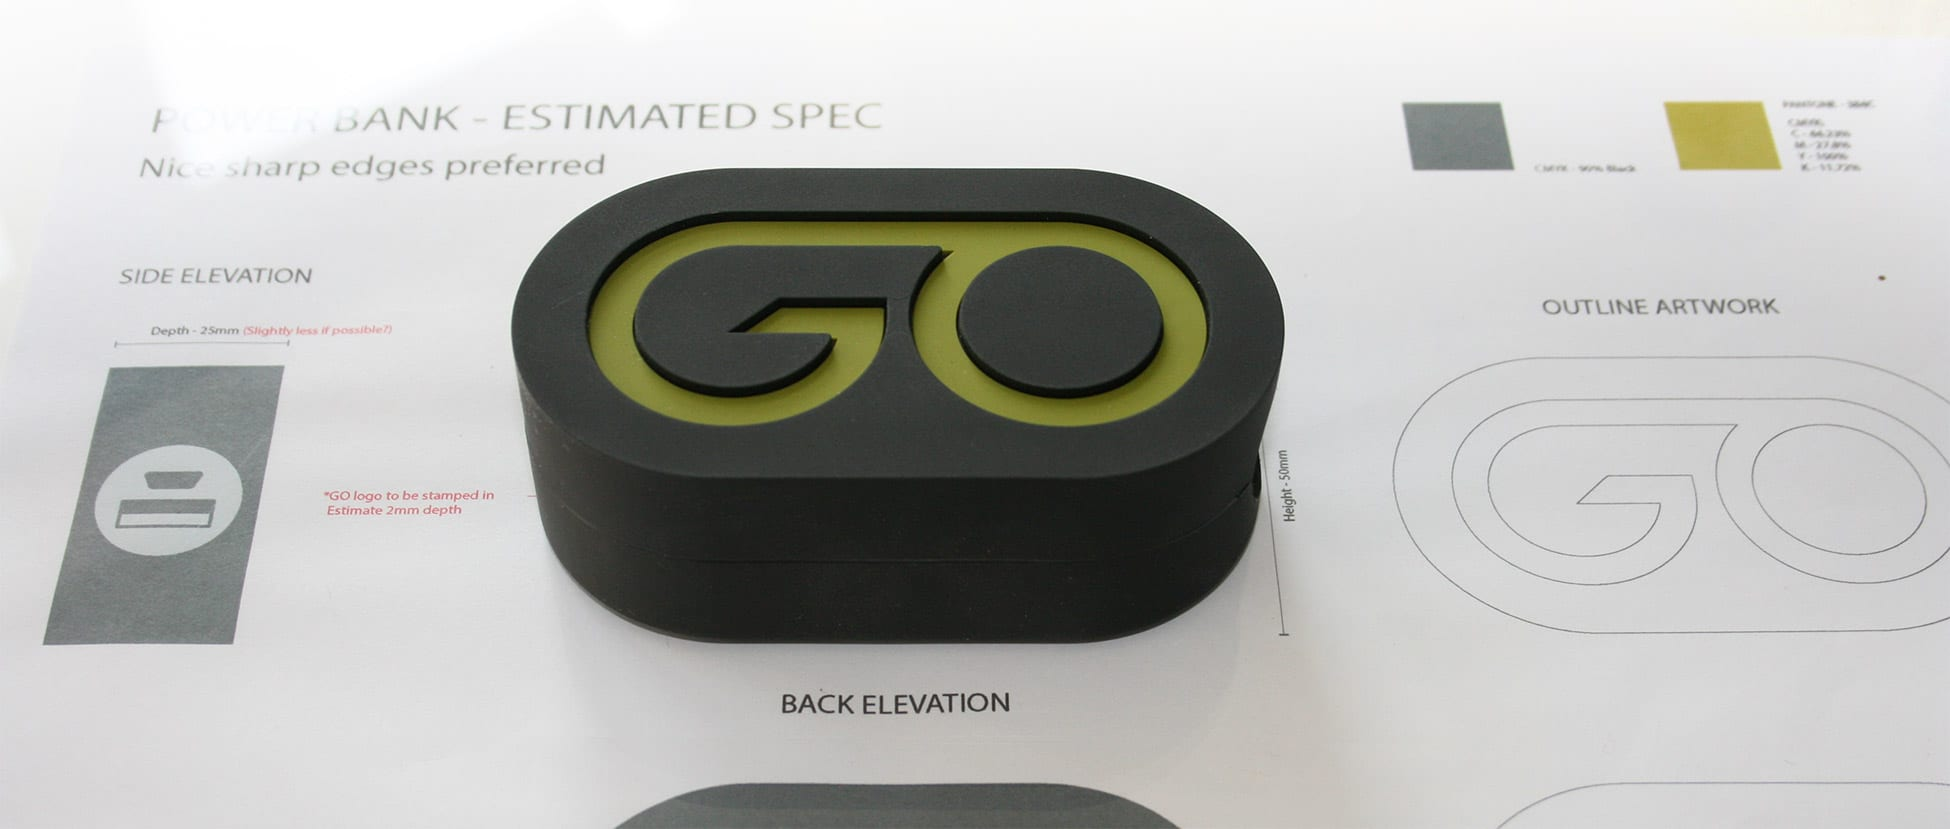 Mike-Garland-GO-Group-PowerBank-Plans